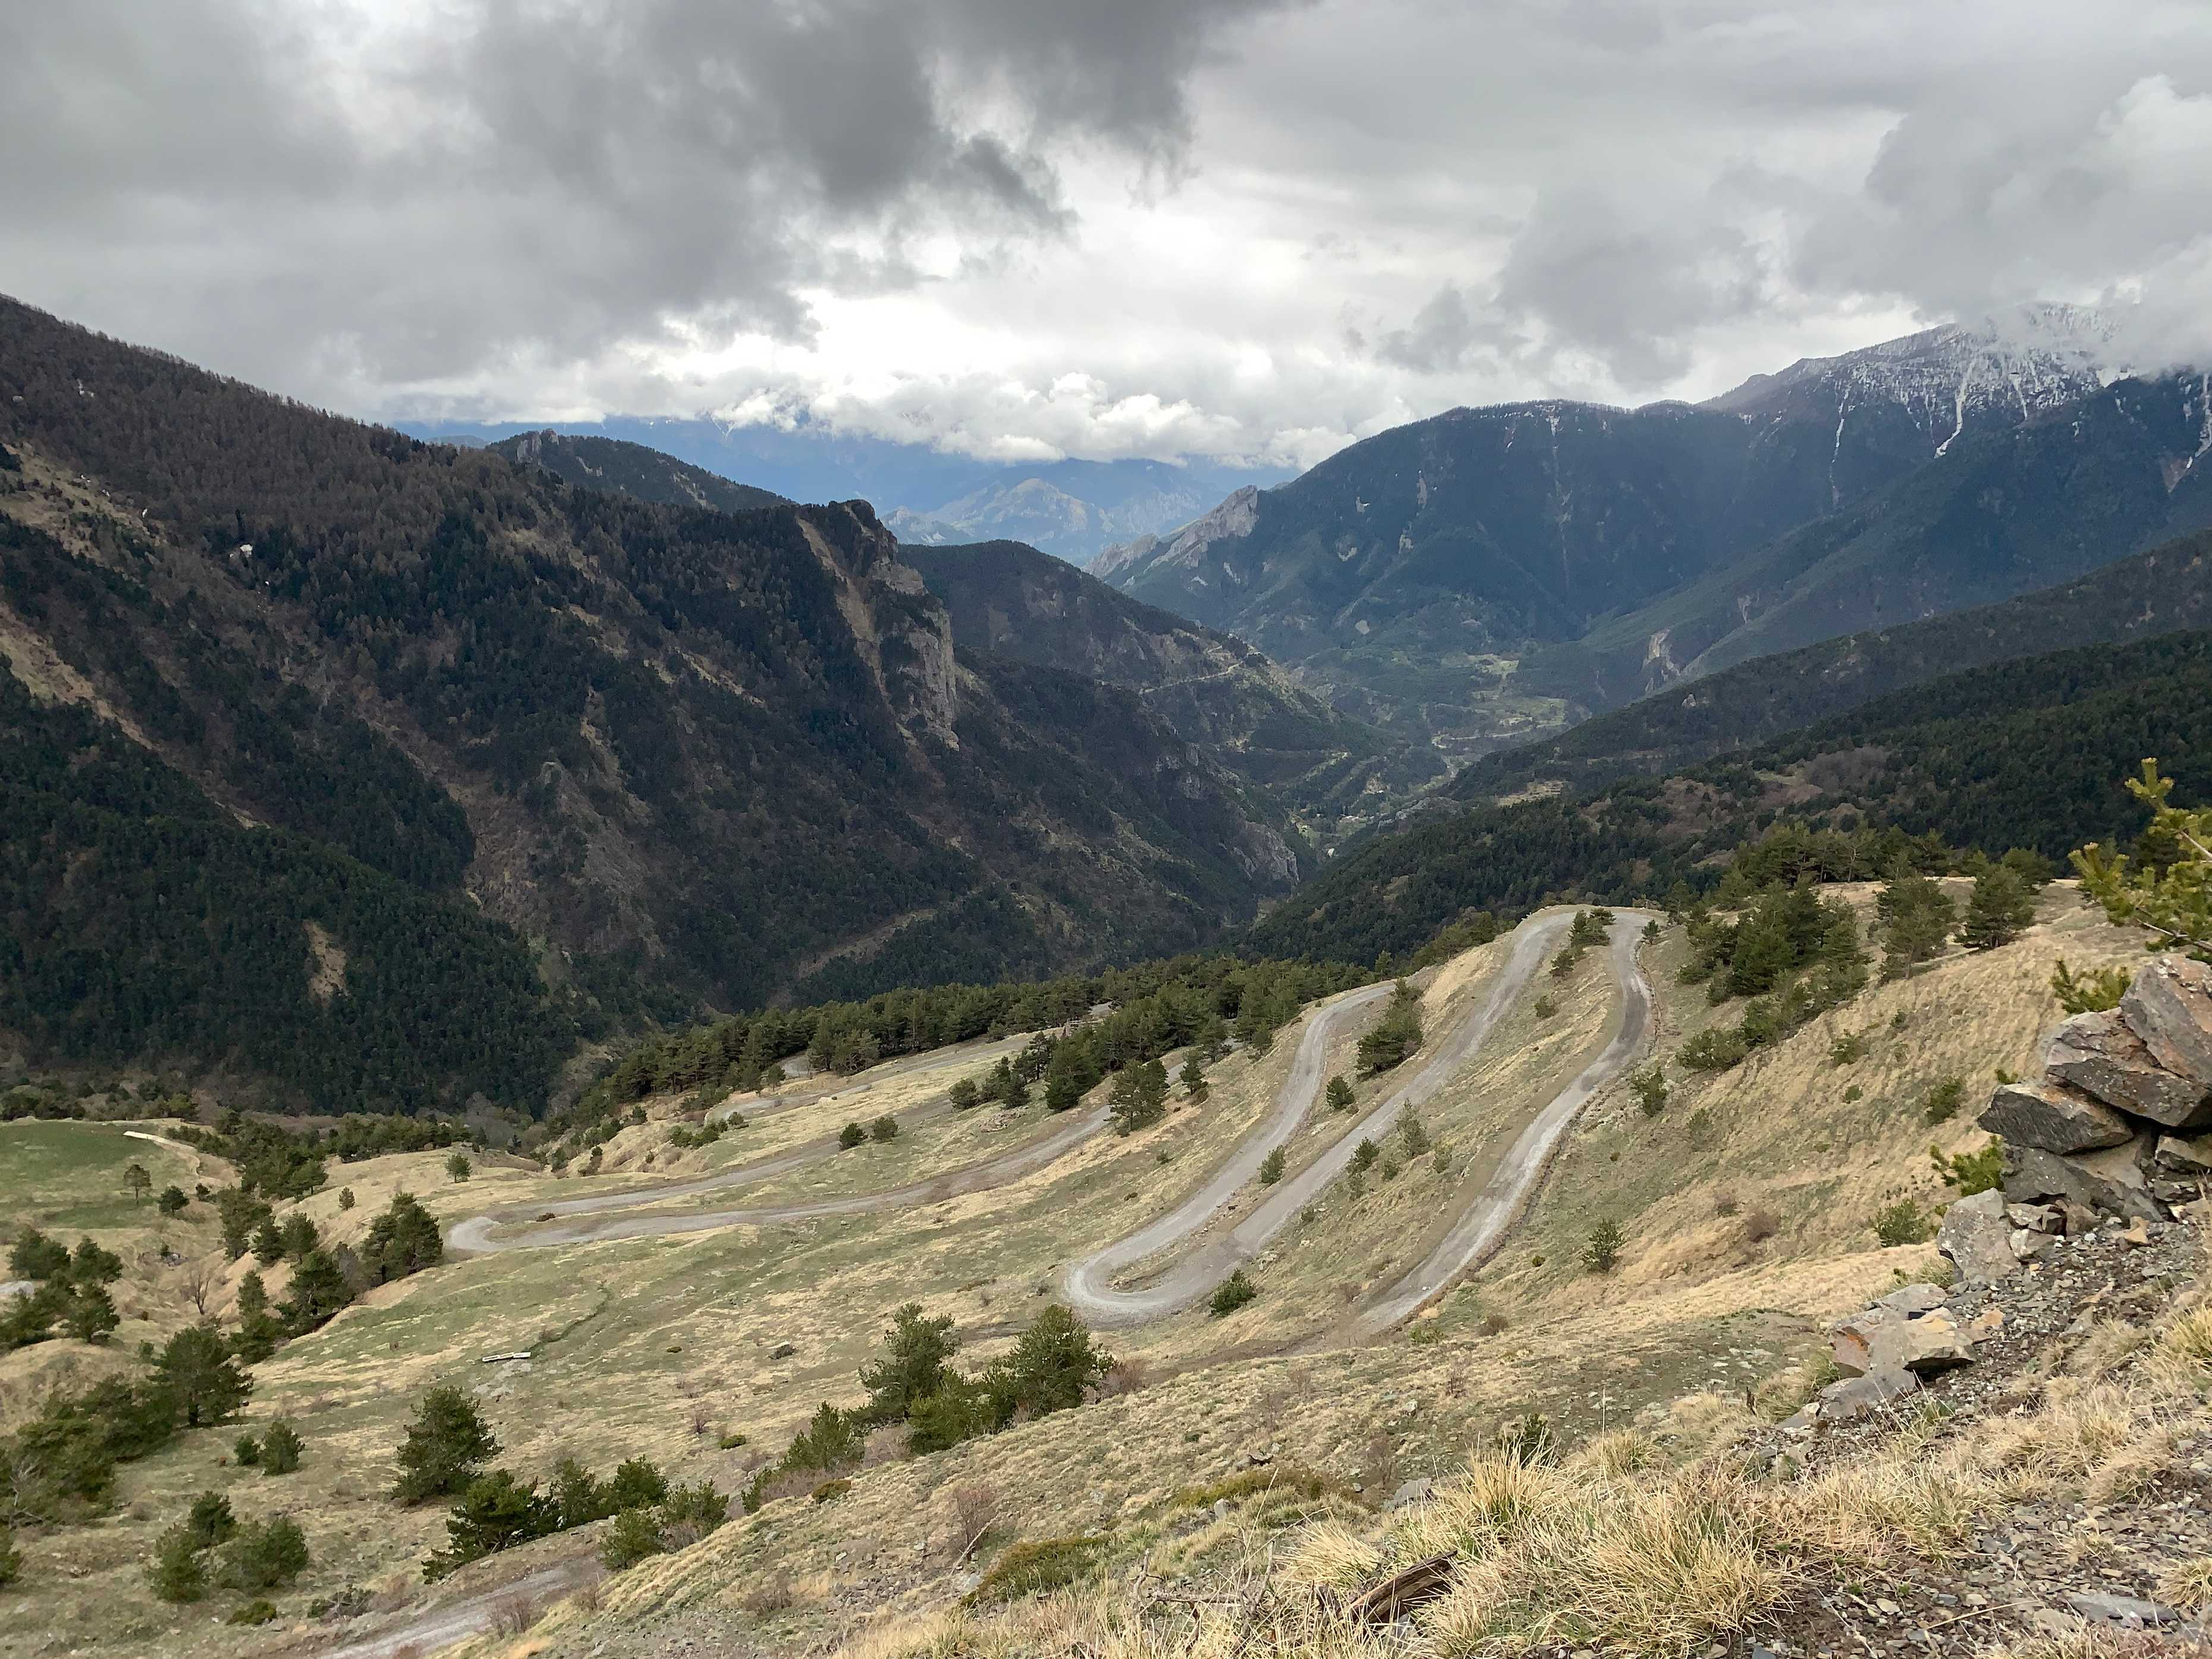 French Alps to Italy via Colle di Tende